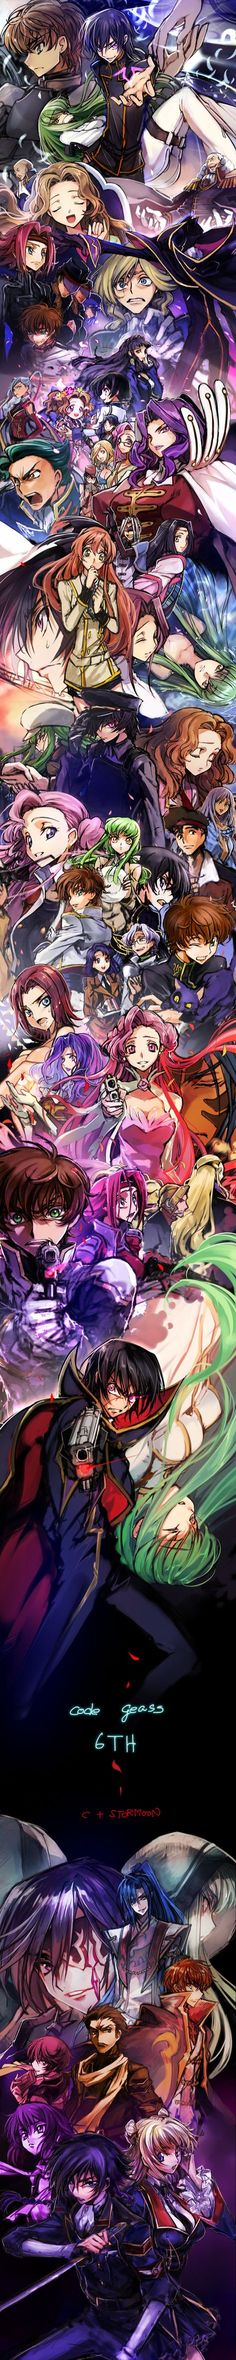 Code Geass | Akito the Exiled